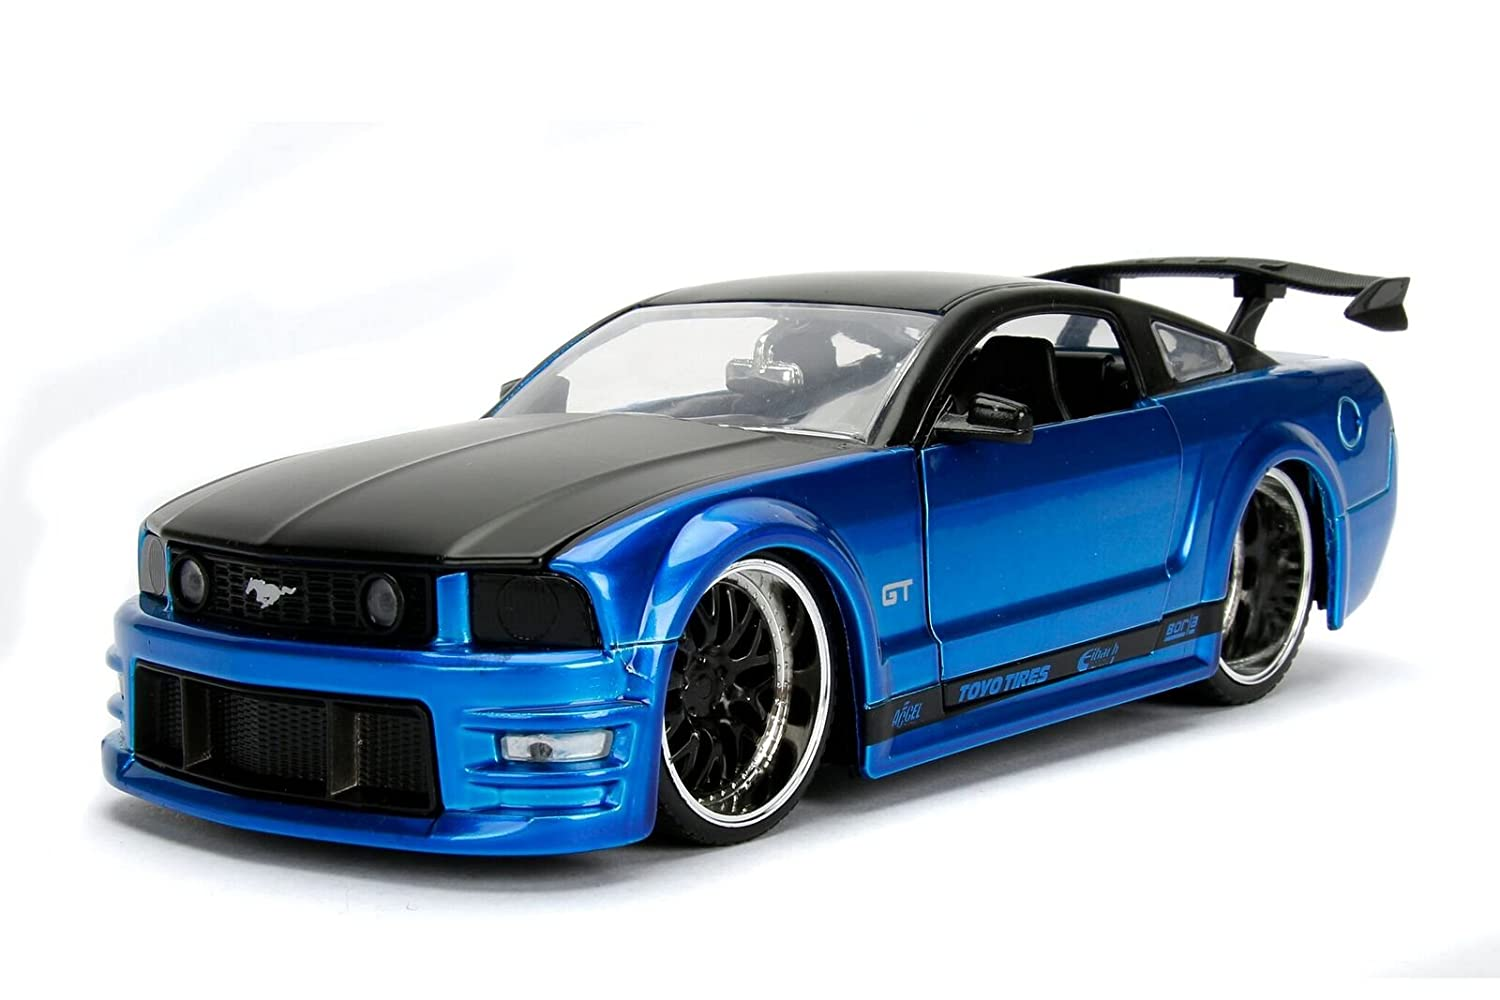 Jada Toys- Ford-Mustang Gt-2006 Voiture Miniature de Collection, 99974BL-99973, Bleu Noir